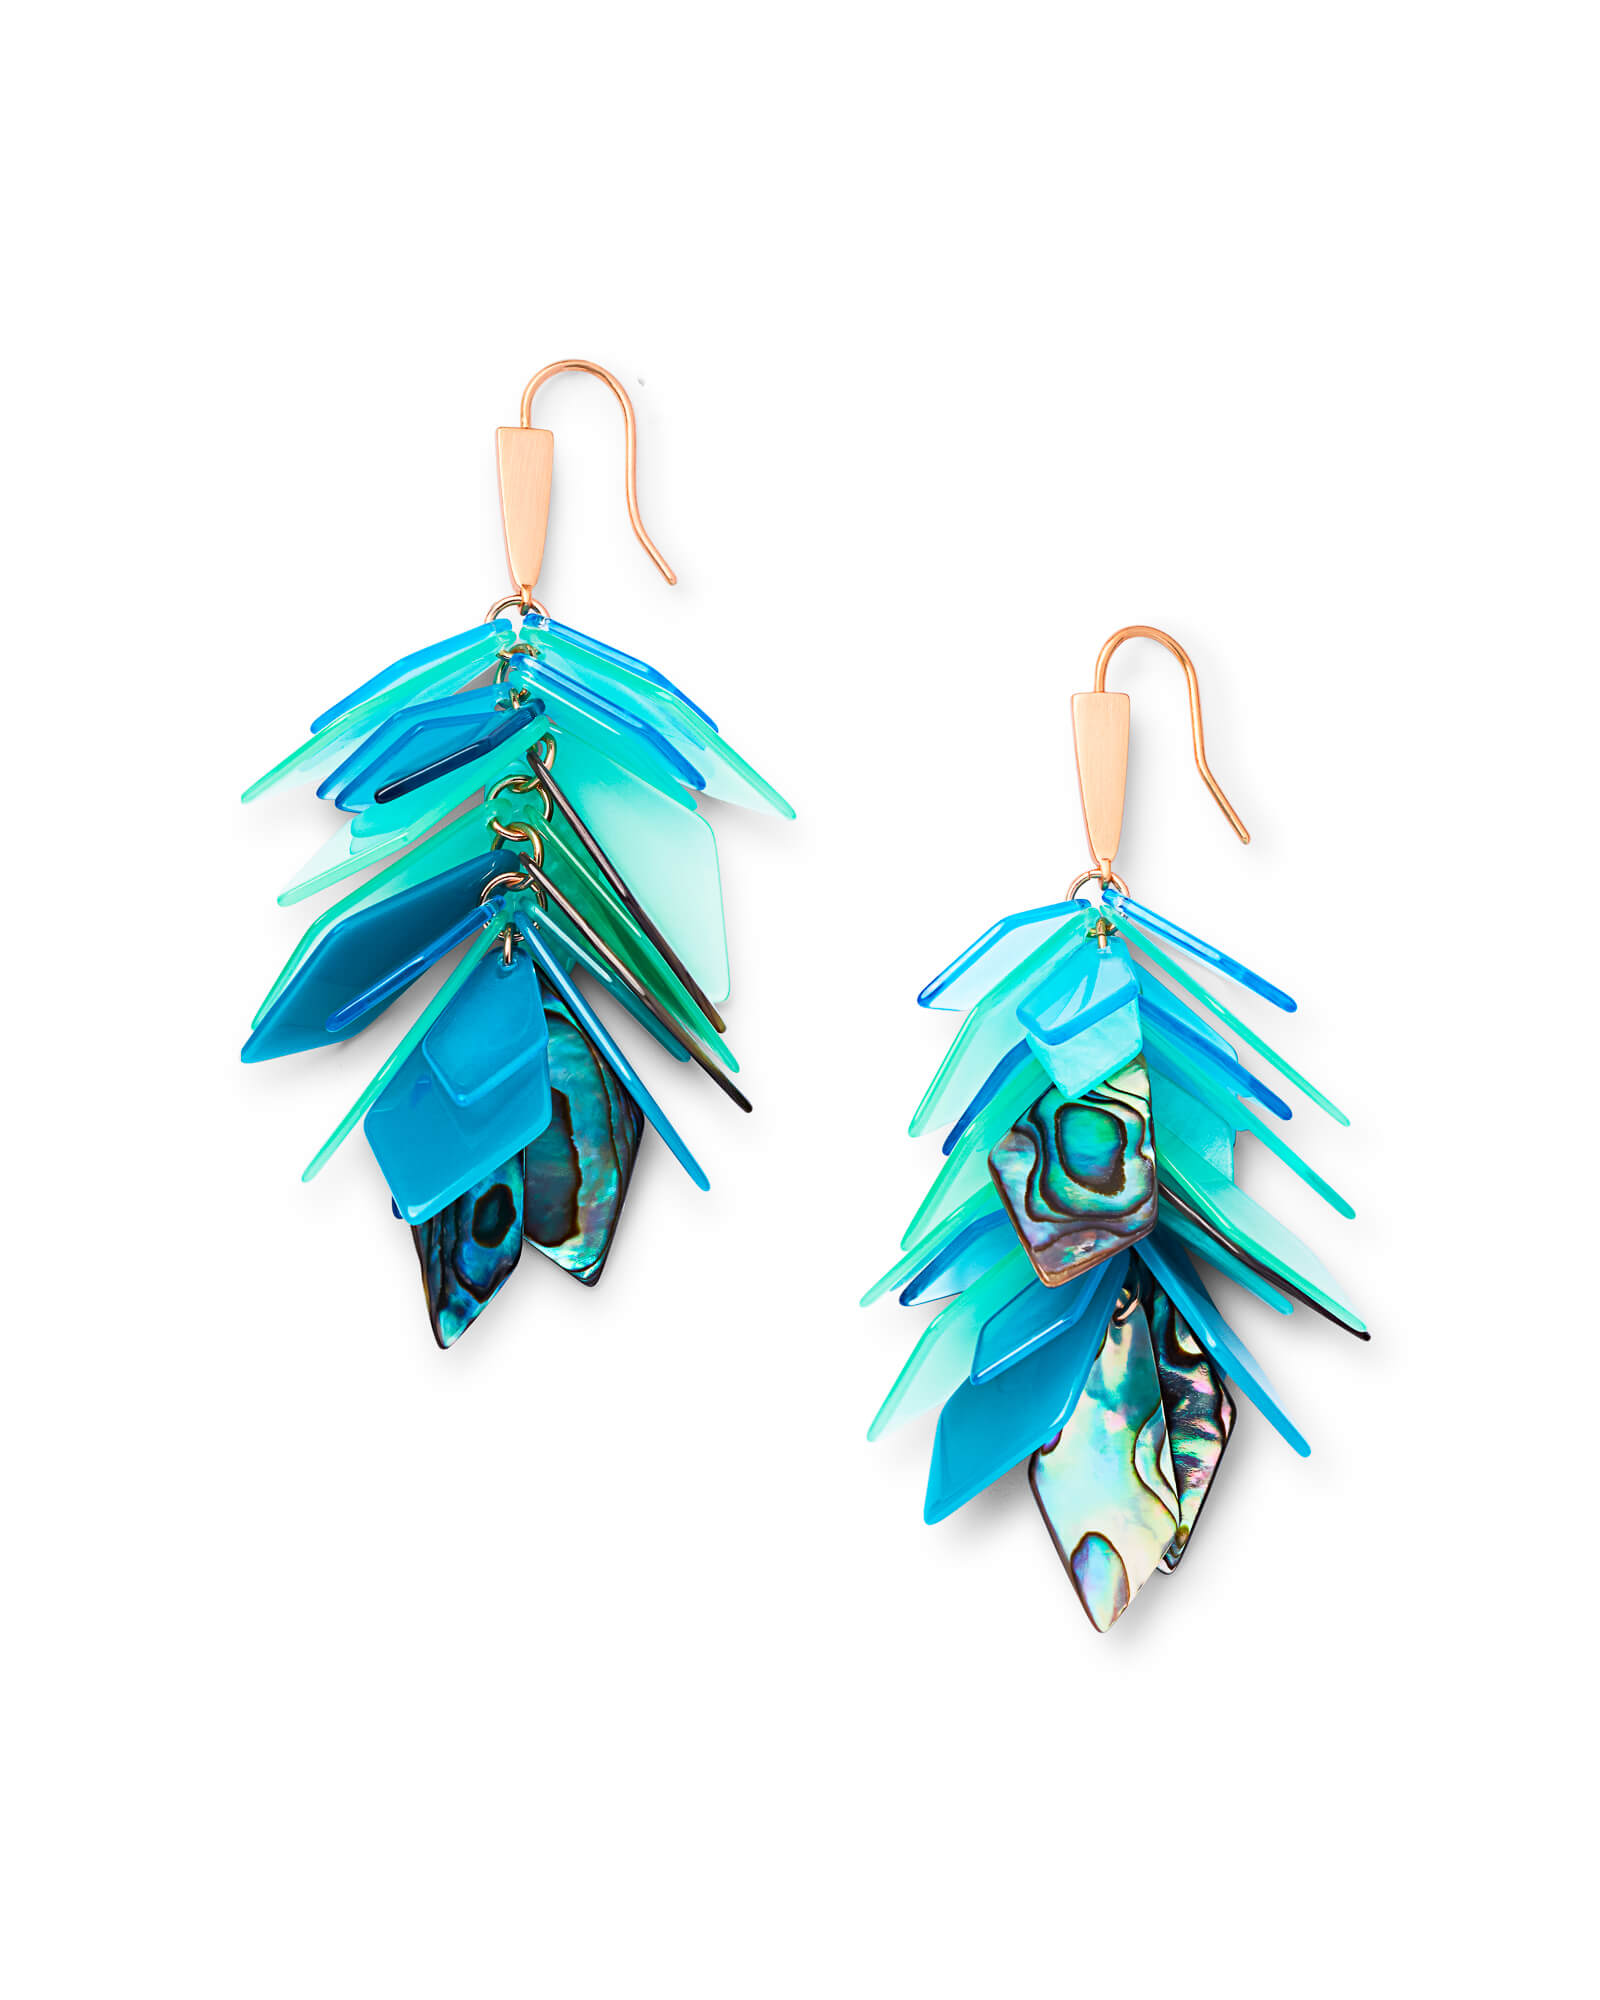 Jenni Rose Gold Statement Earrings in Abalone Mix